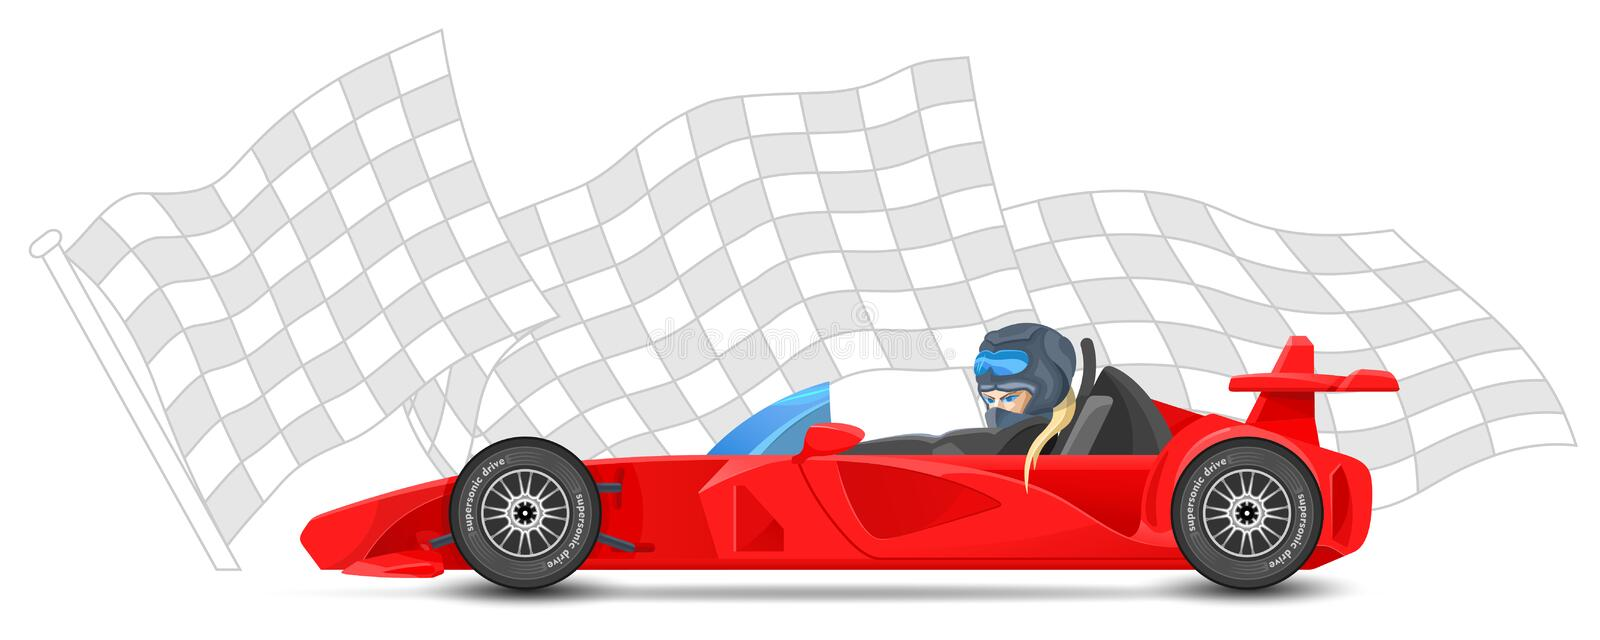 Red race car side view, formula 1, on sports finish flag background. Bolides sport. vector illustration